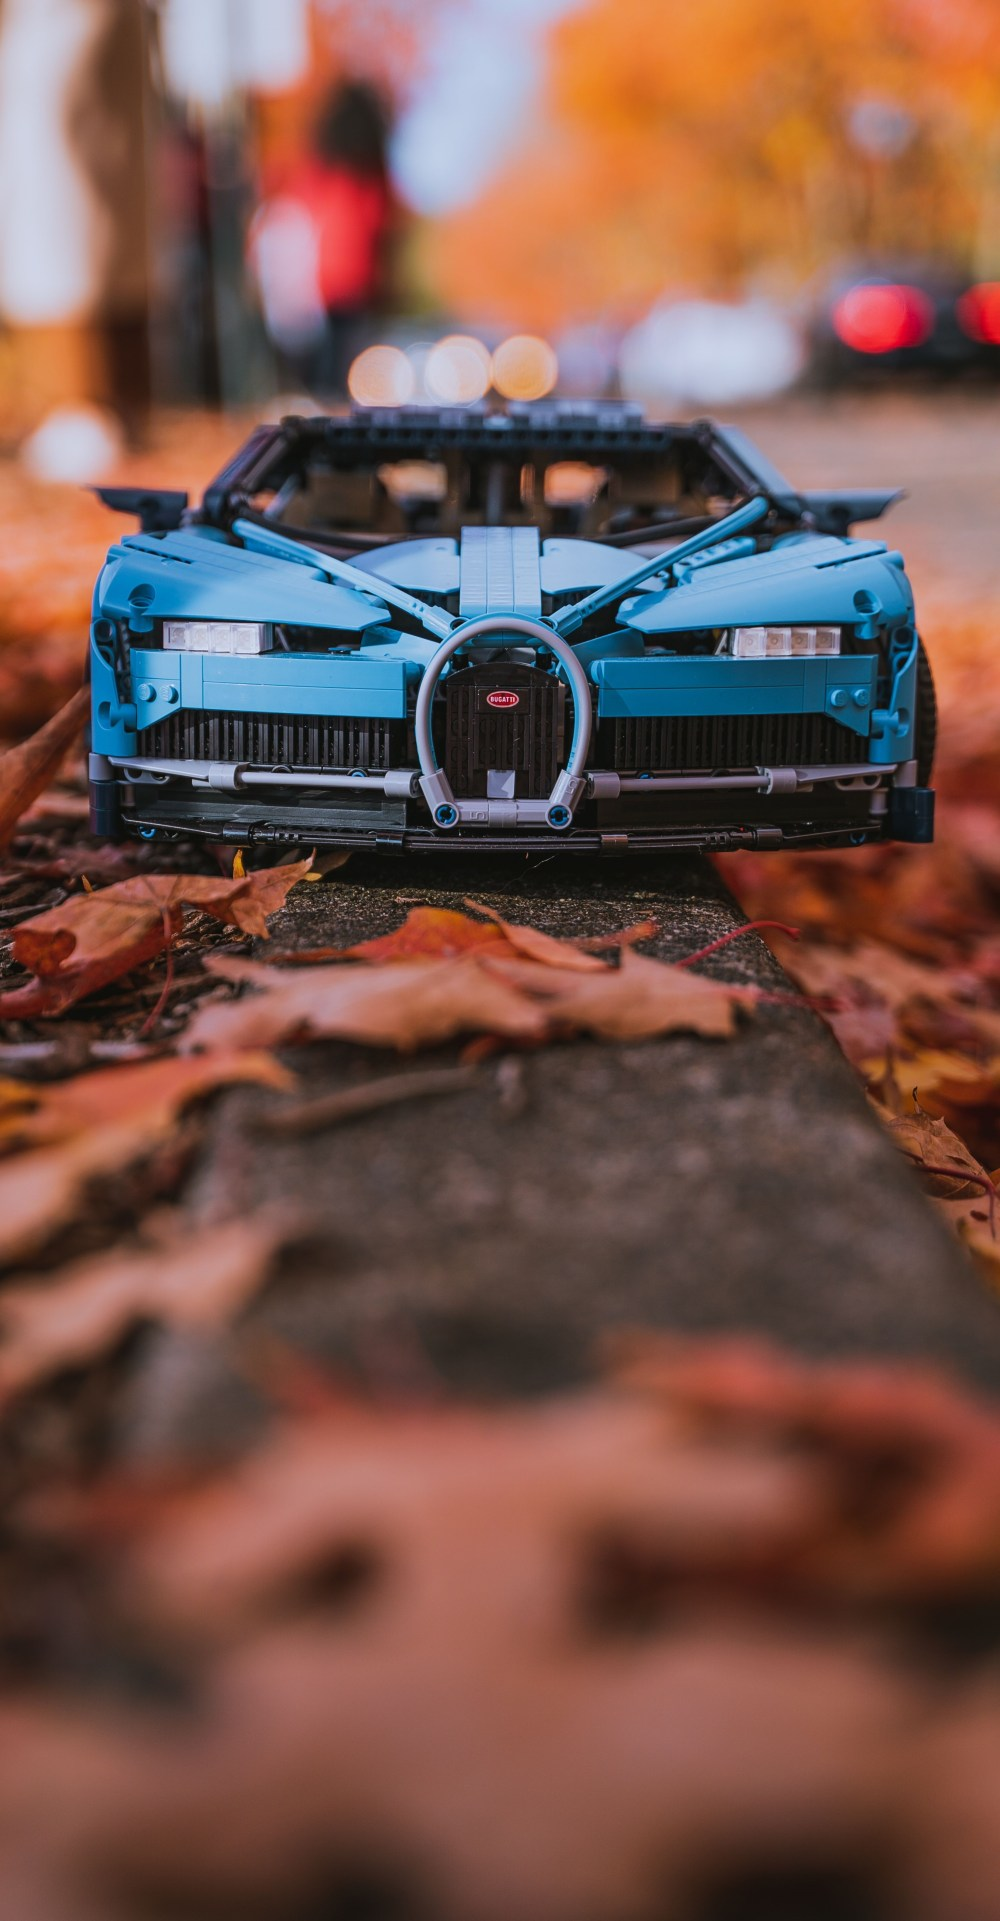 Live wallpaper is an exciting and novel way of spicing up your smartphone's home and lock screens. Blue Car On Brown Dried Leaves Photo Free Seattle Image On Unsplash